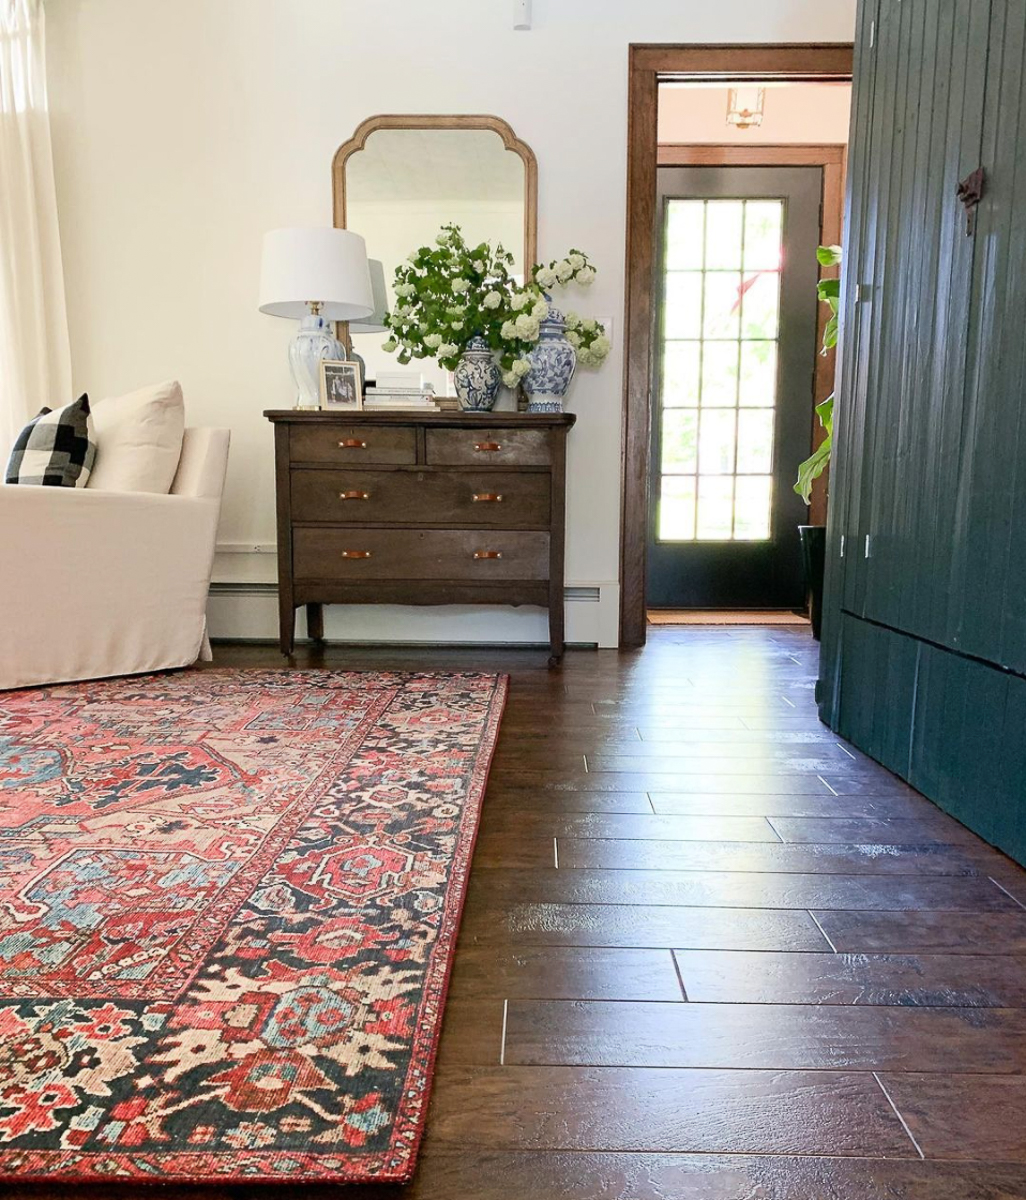 Beautiful farmhouse tour - love the antique furniture and huge green cabinet.